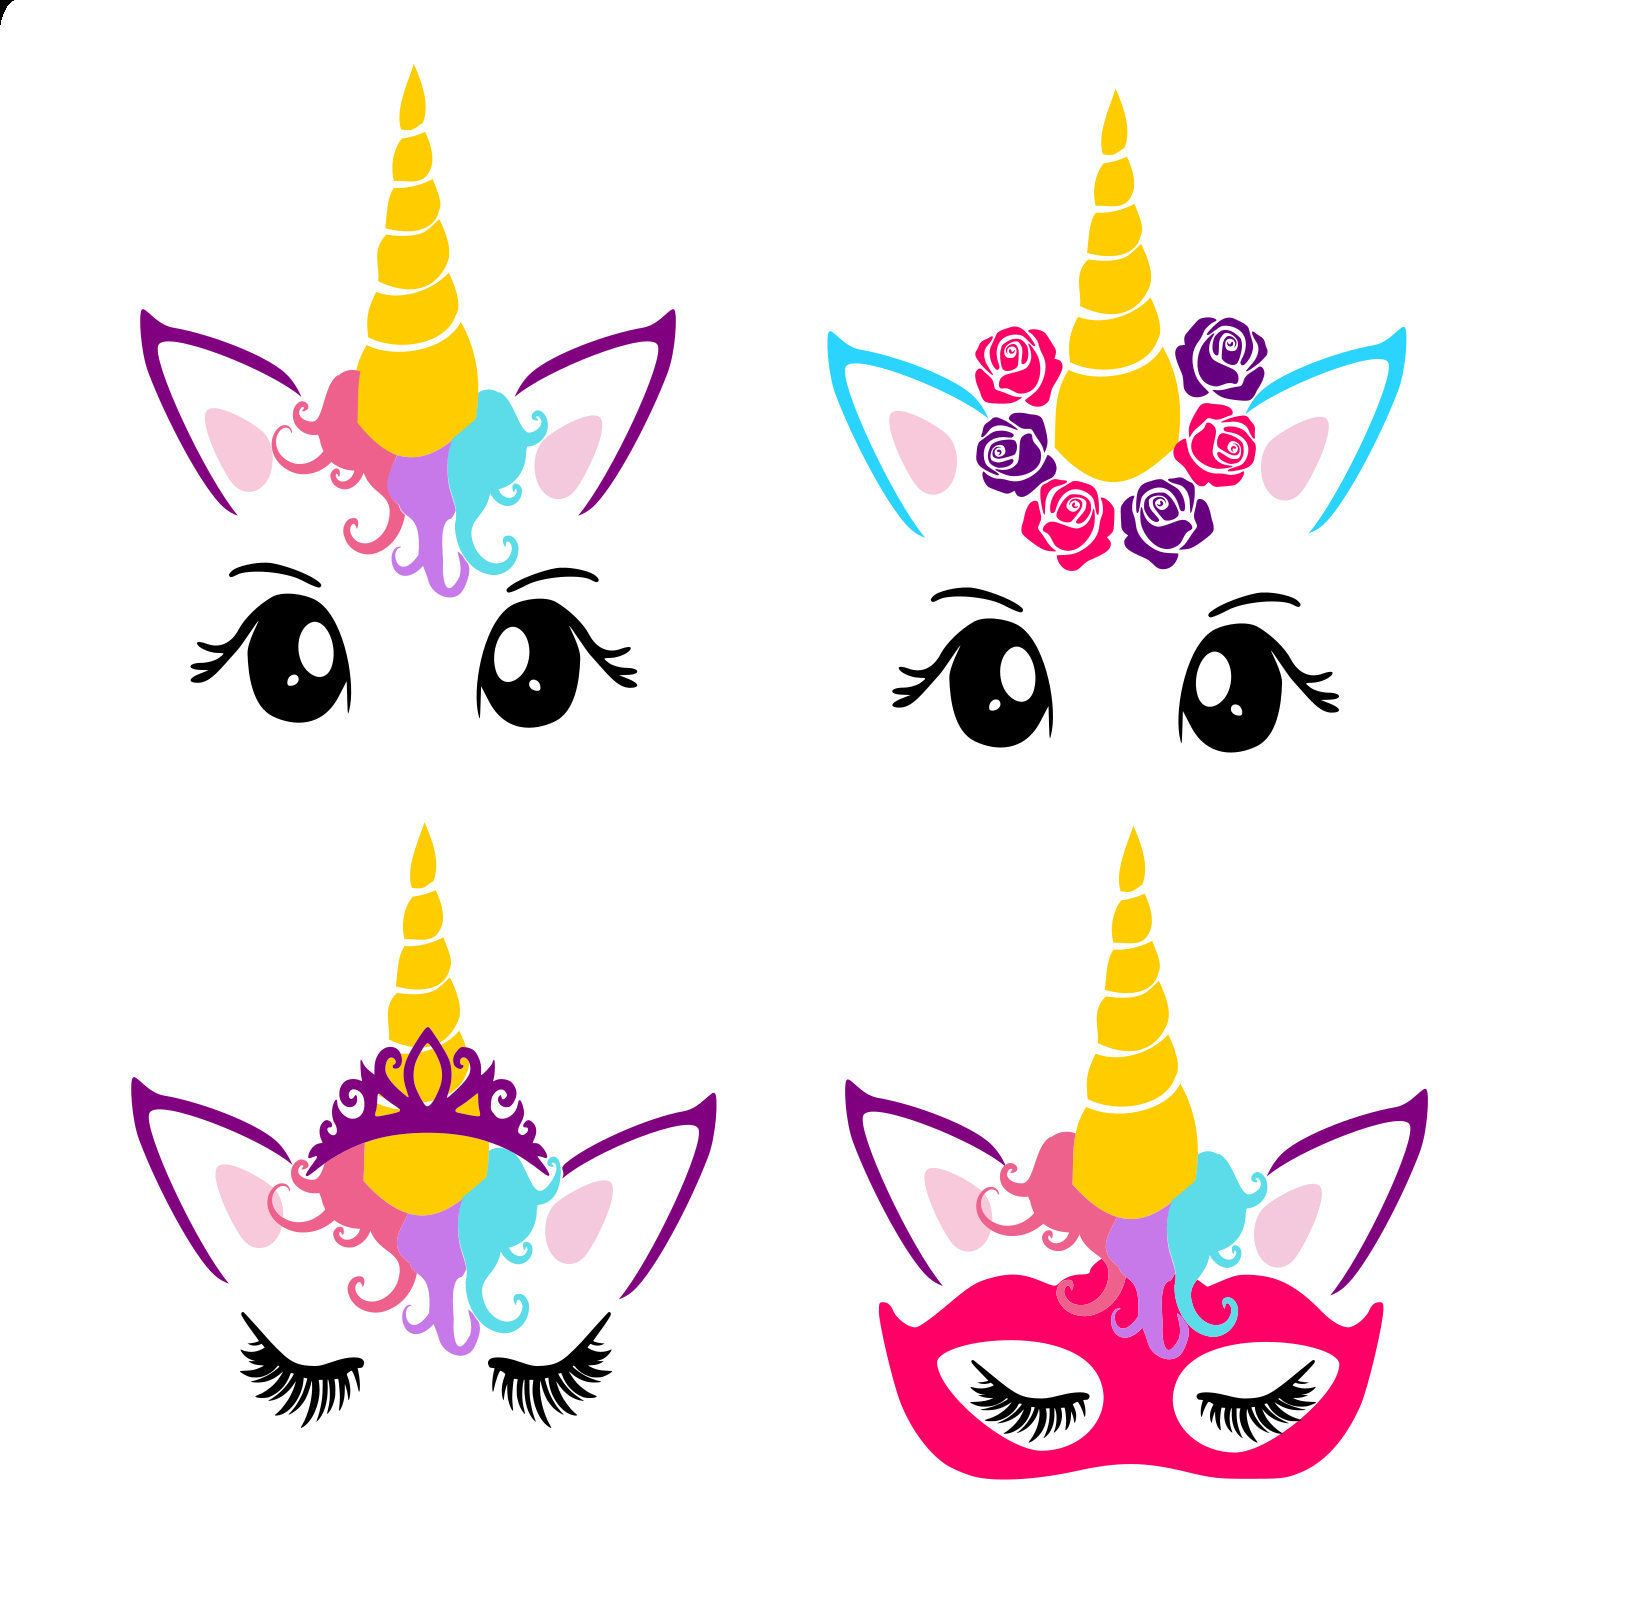 Légend image pertaining to unicorn face printable